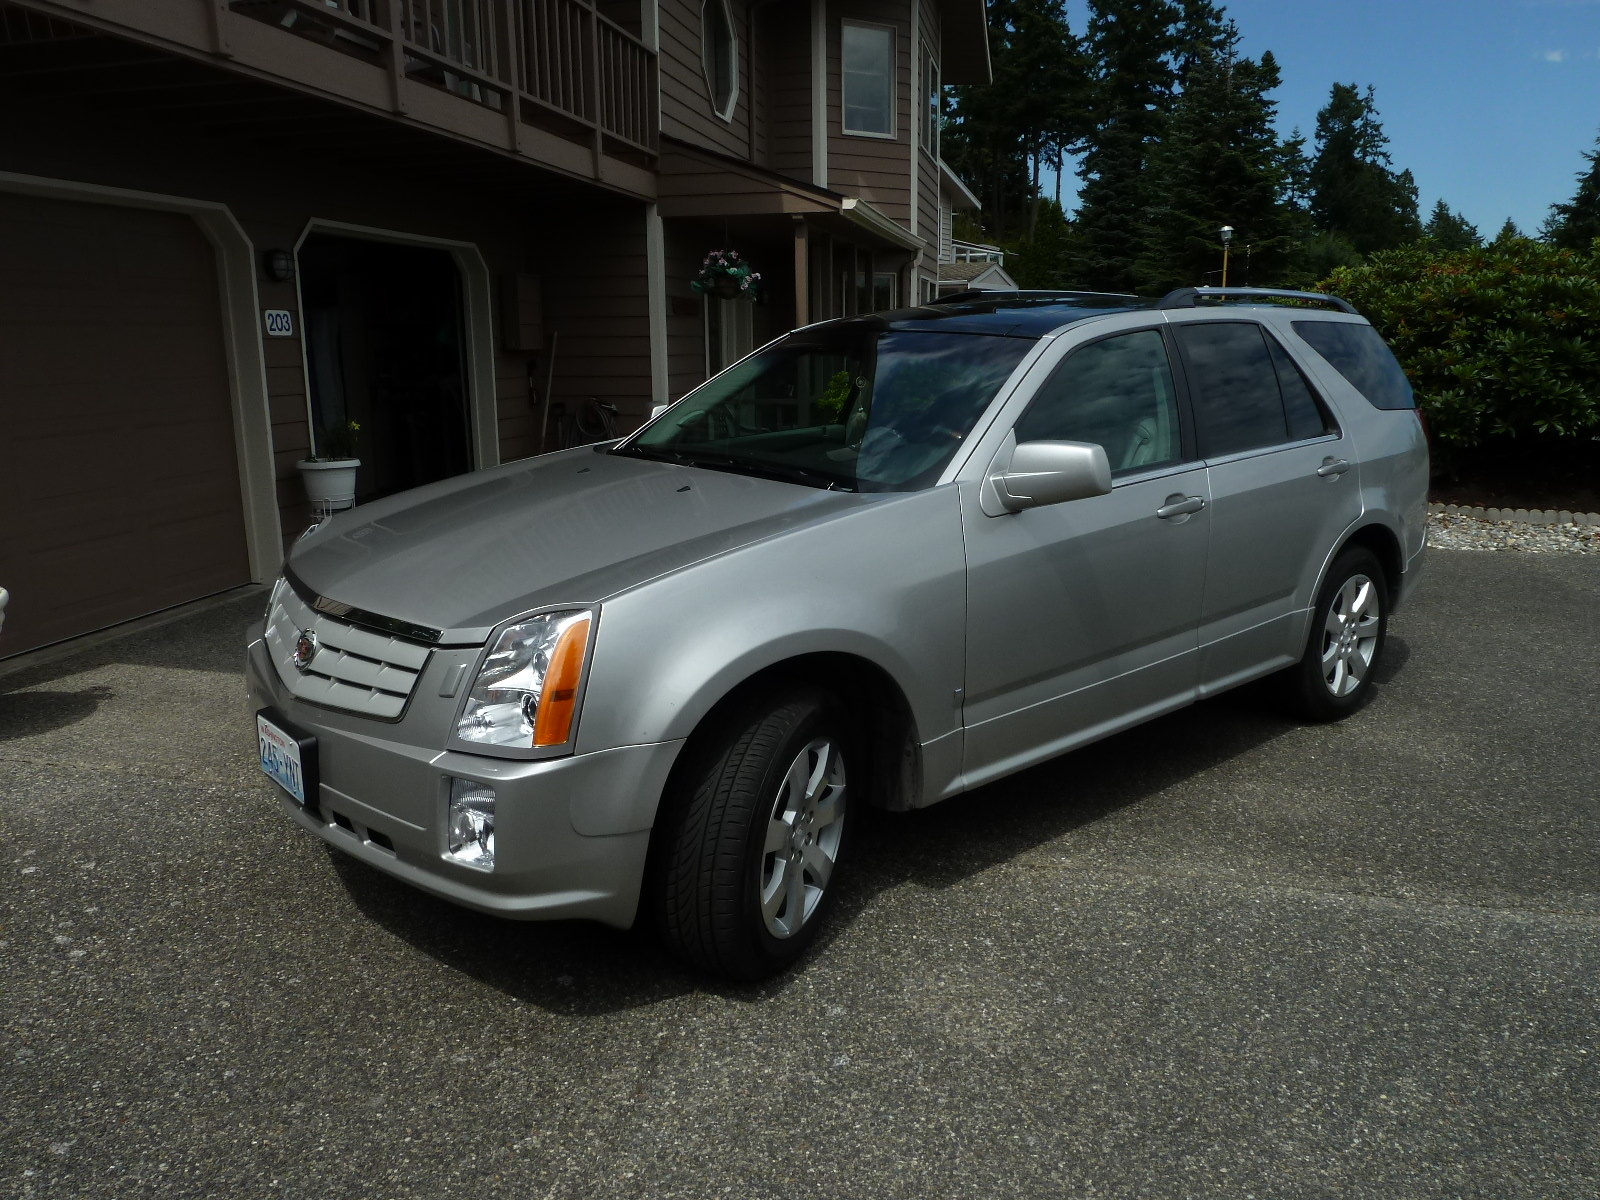 Cadillac SRX Questions - What are the major differences between the